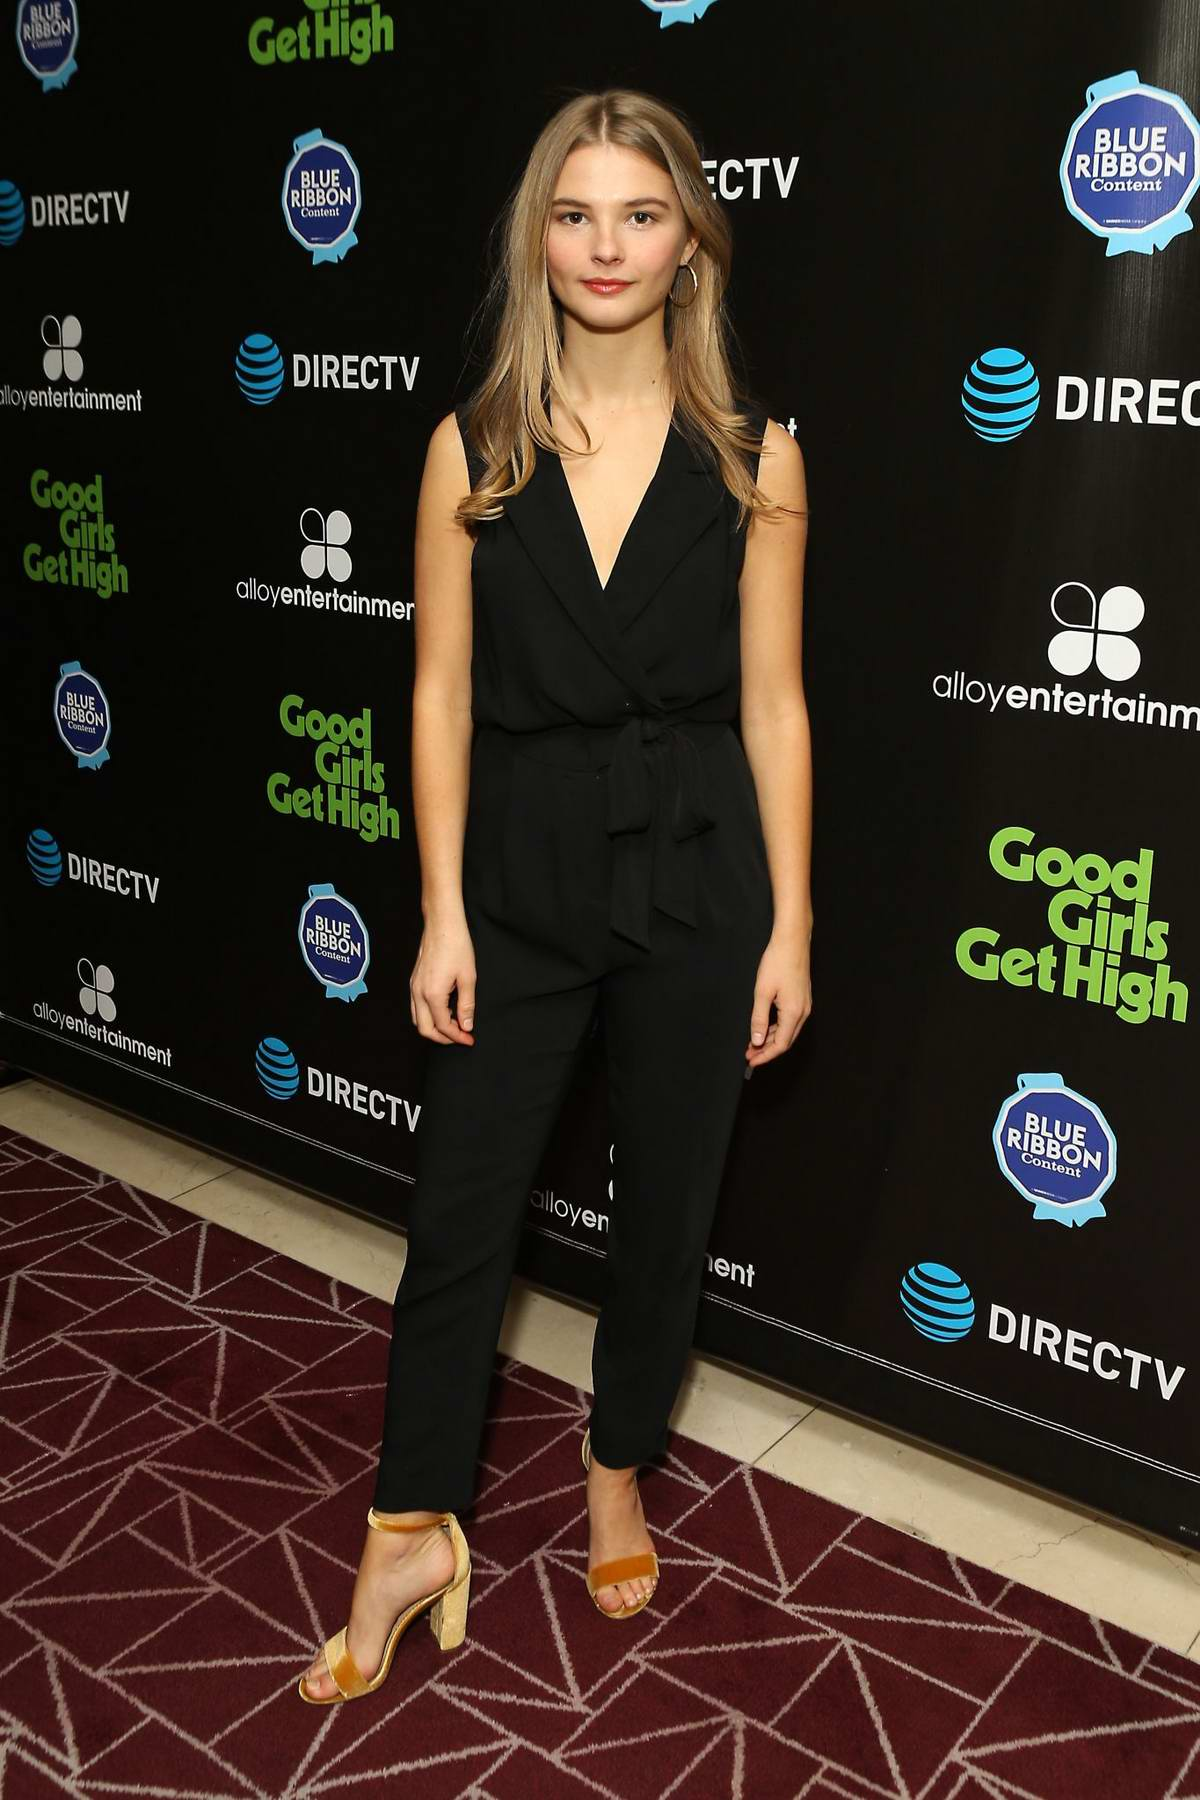 Stefanie Scott attends 'Good Girls Get High' photocall in West Hollywood, Los Angeles